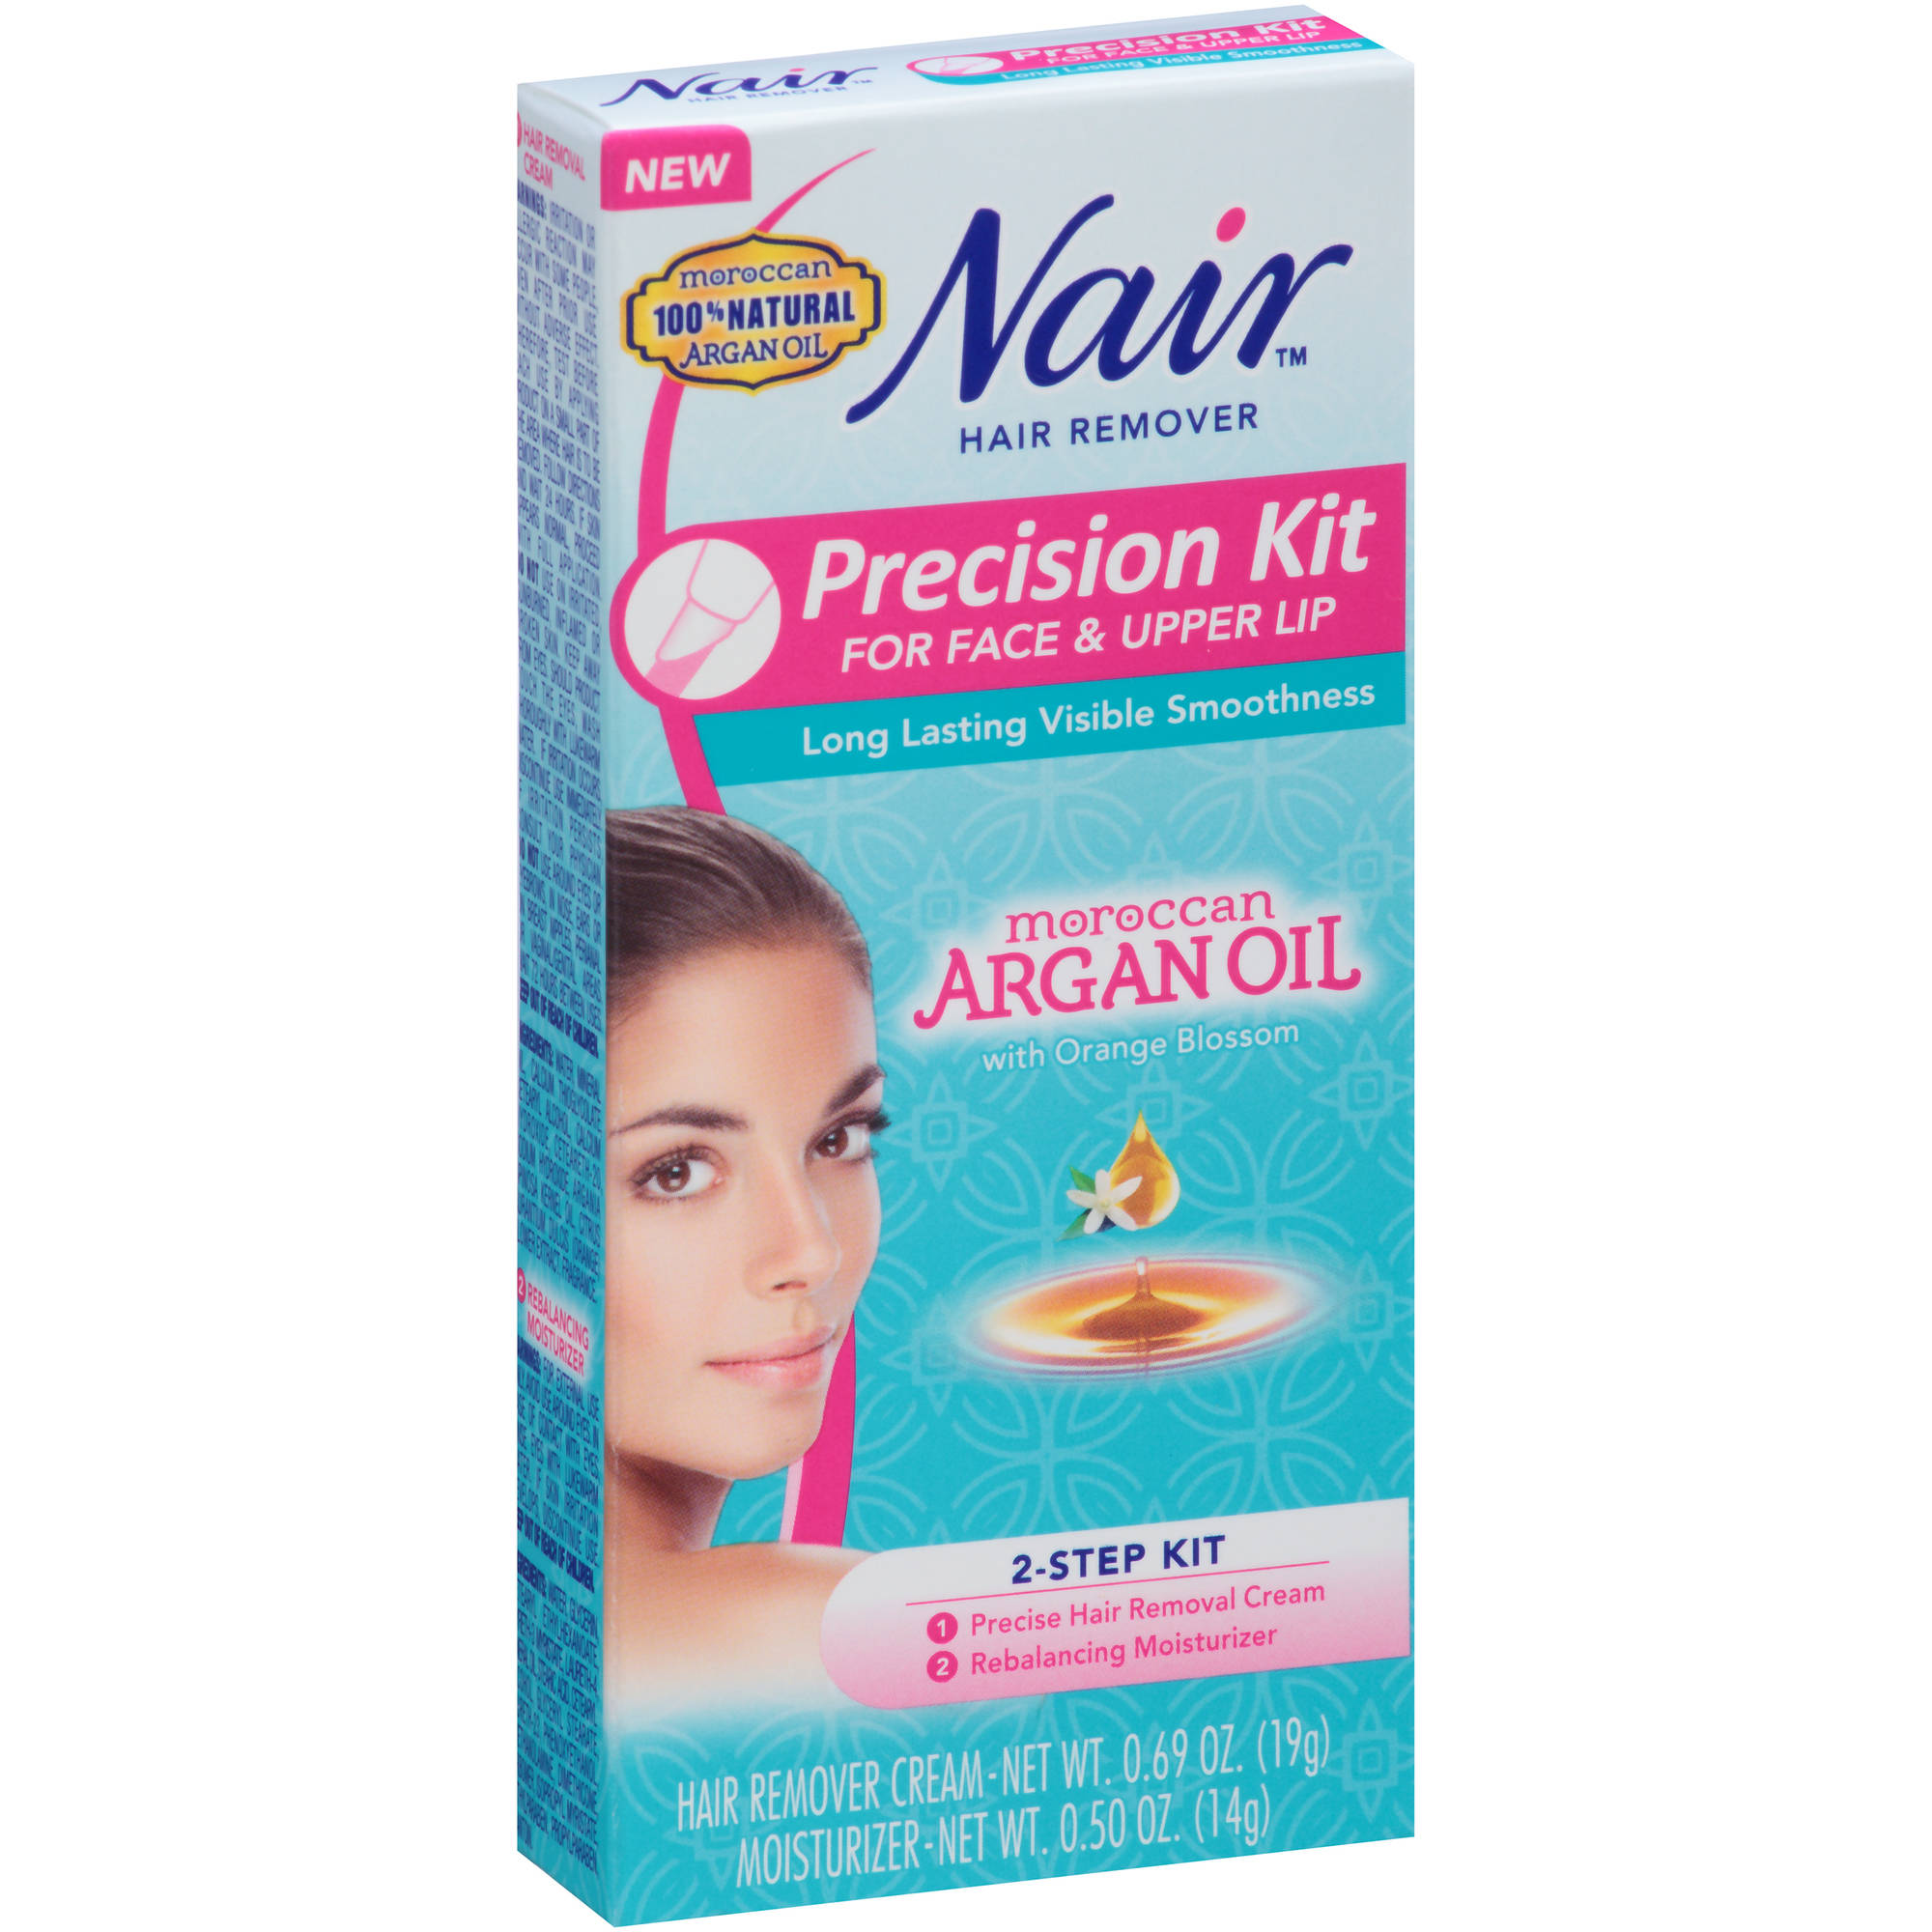 Nair Precision Kit for Face & Upper Lip Hair Remover